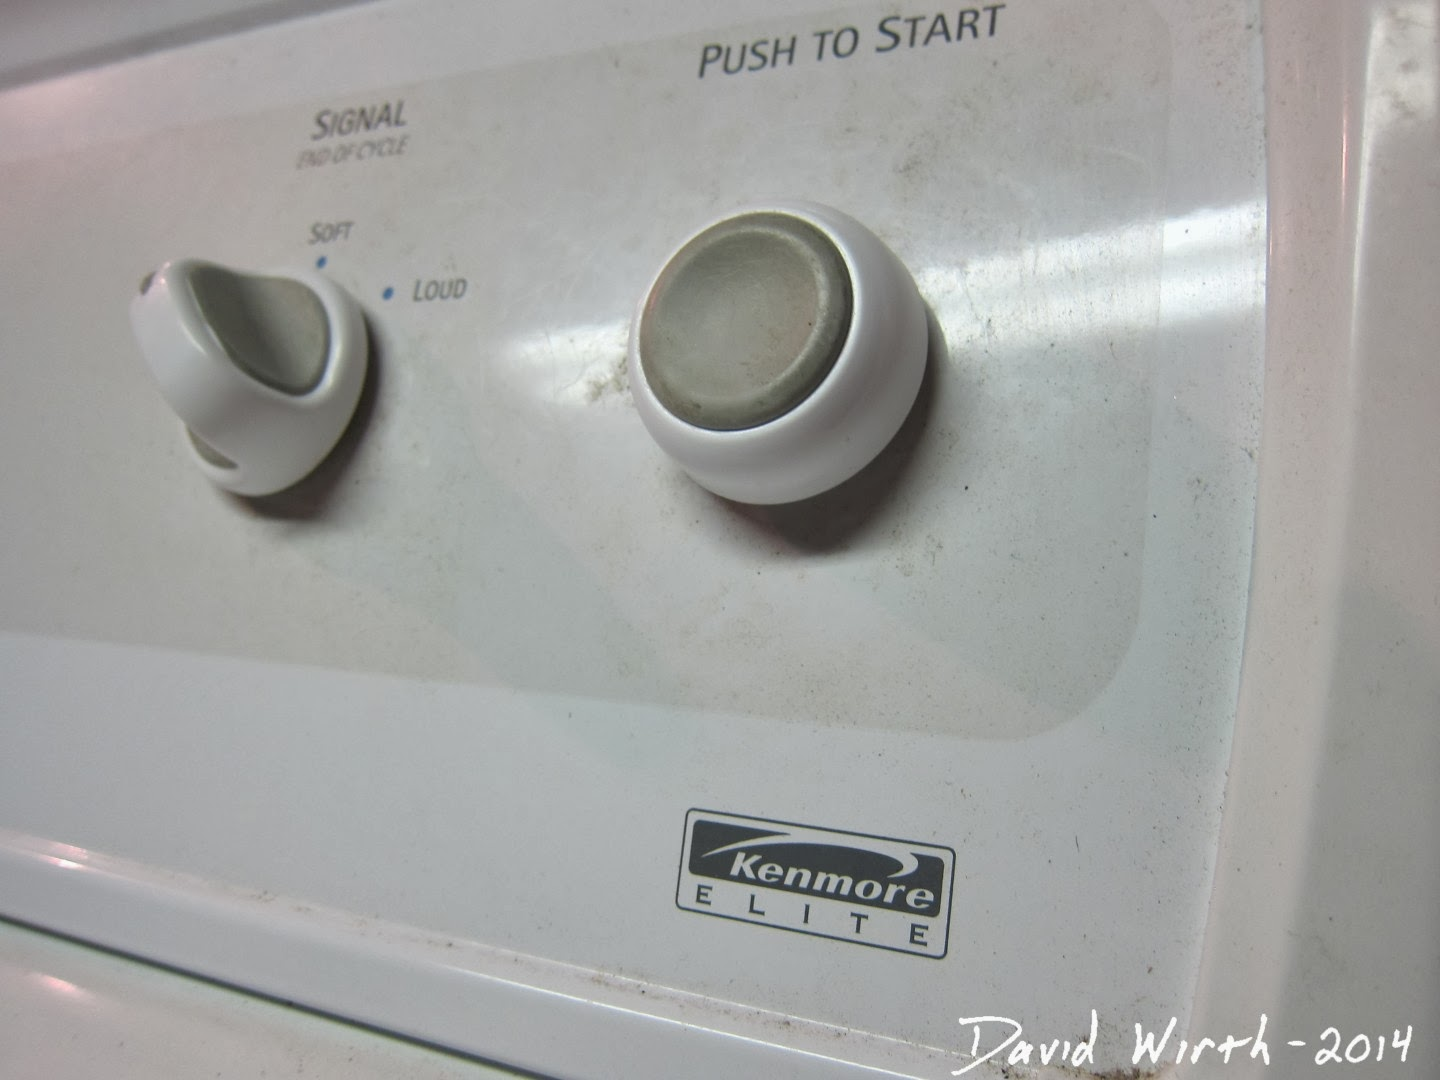 Kenmore Dryer Wont Spin